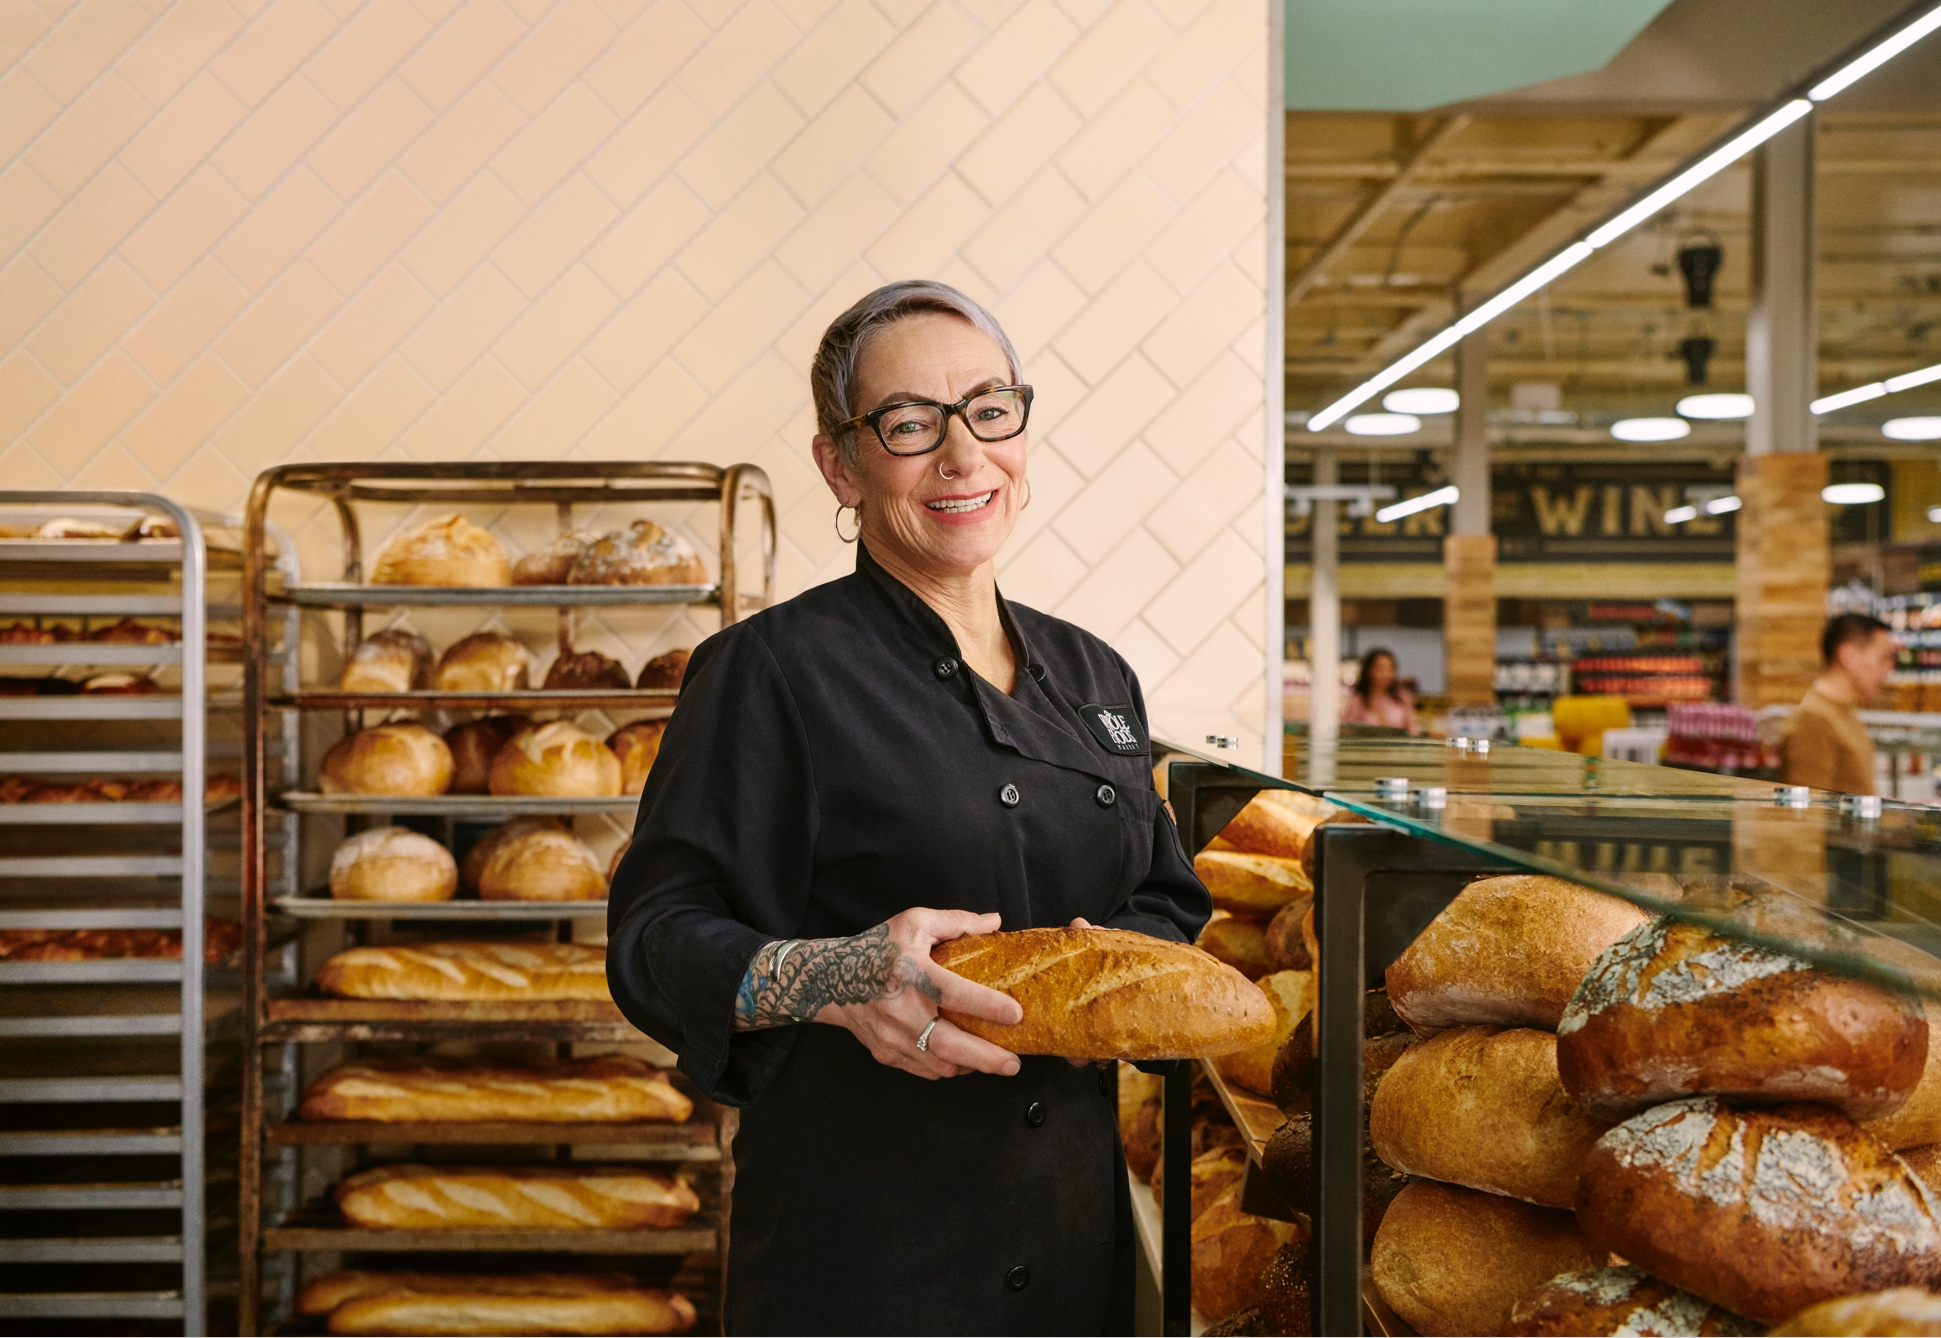 Image of Whole Foods employee baking bread